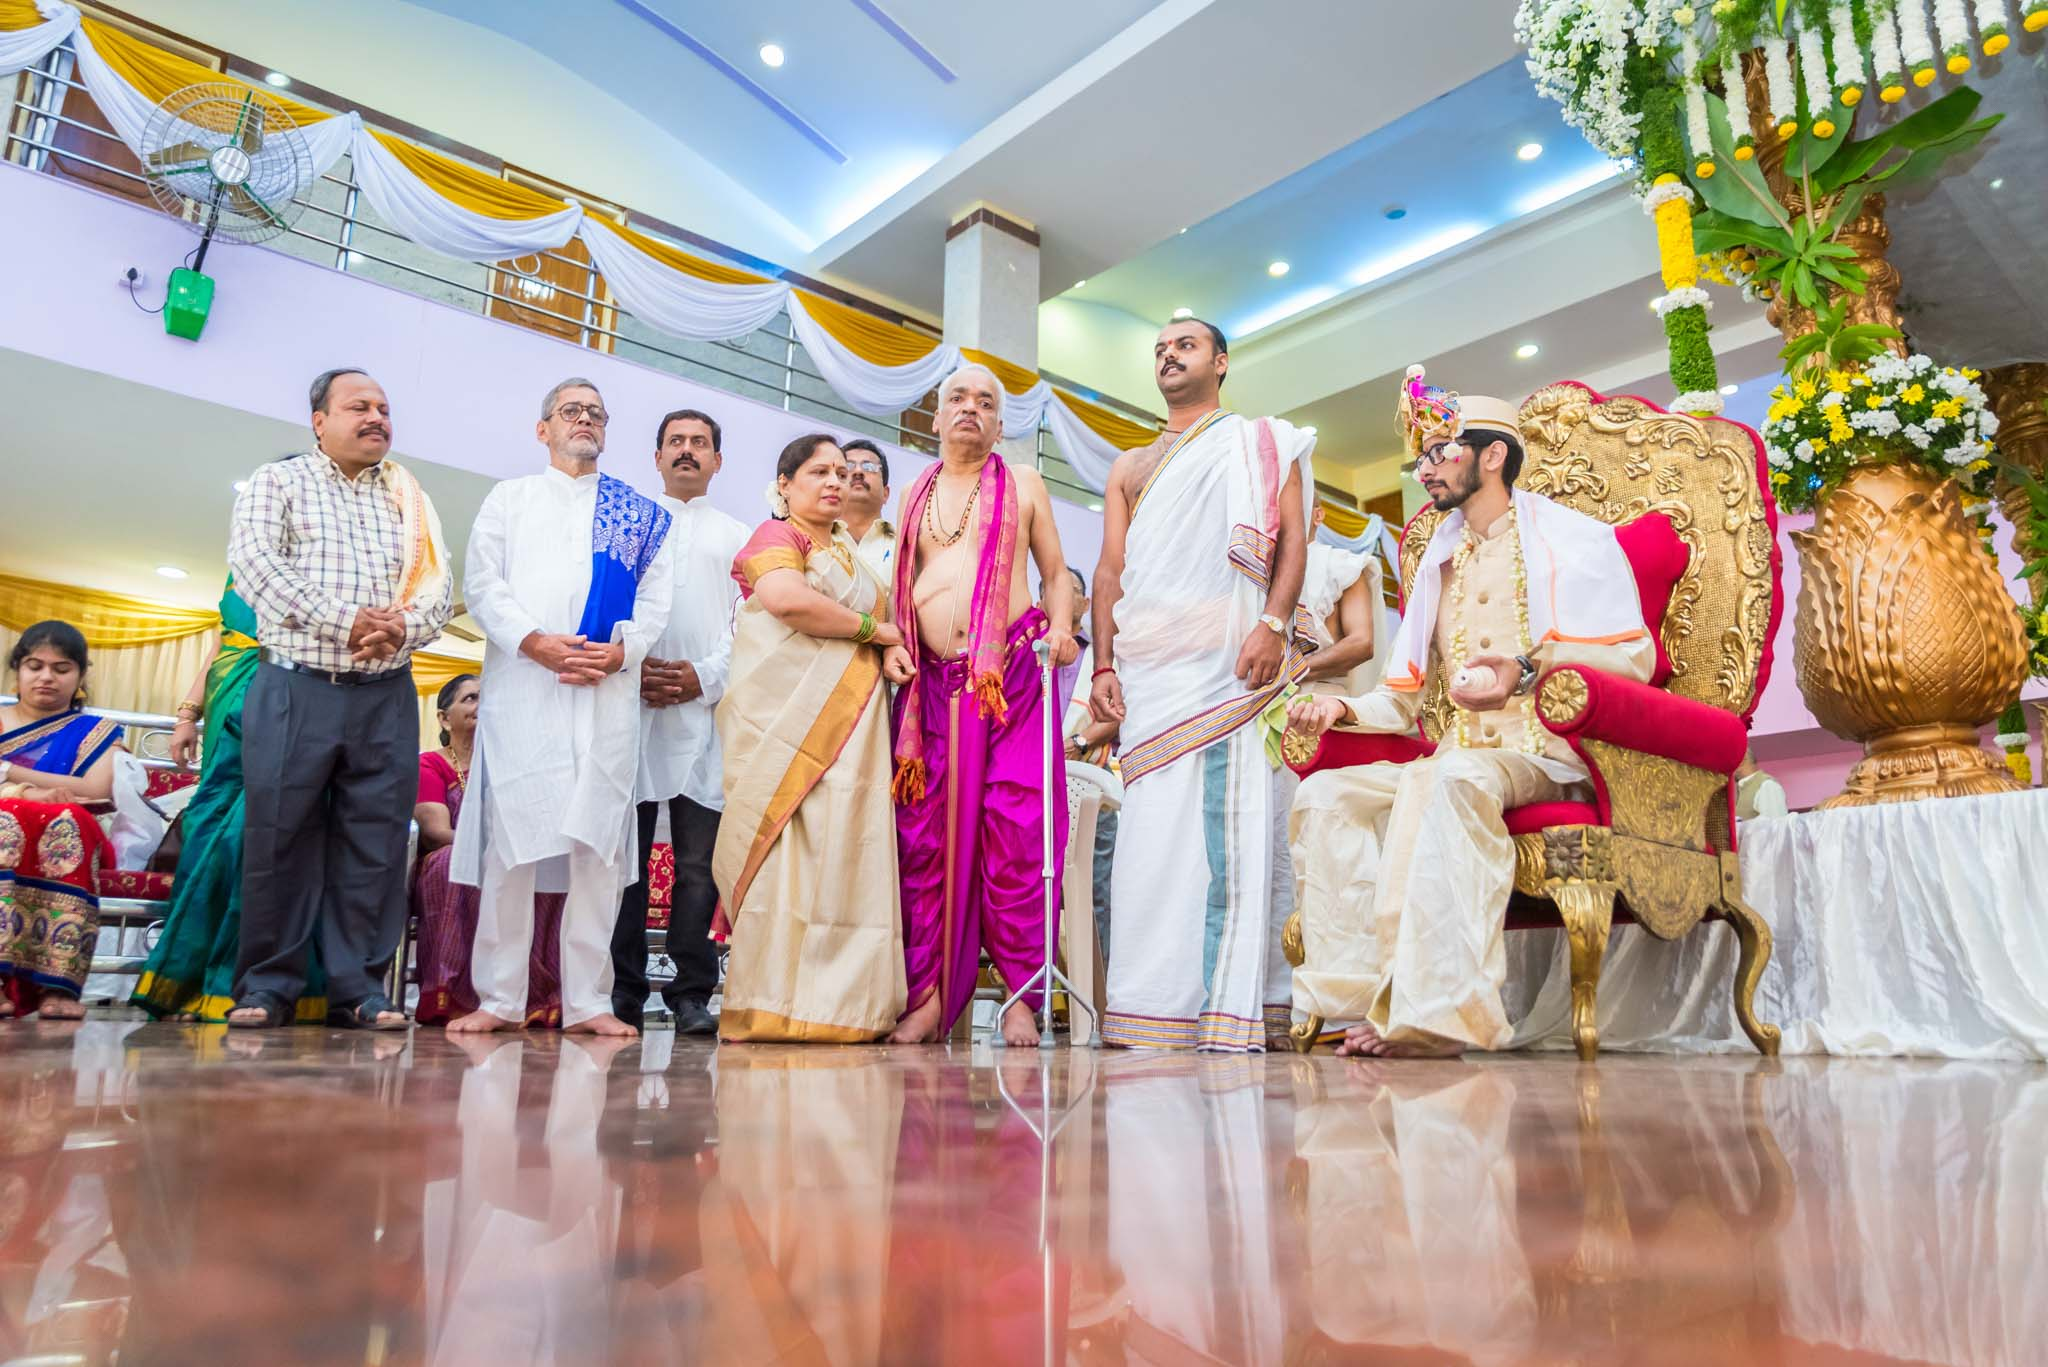 WhatKnot-Candid-Wedding-Photography-Mumbai-Bangalore-142